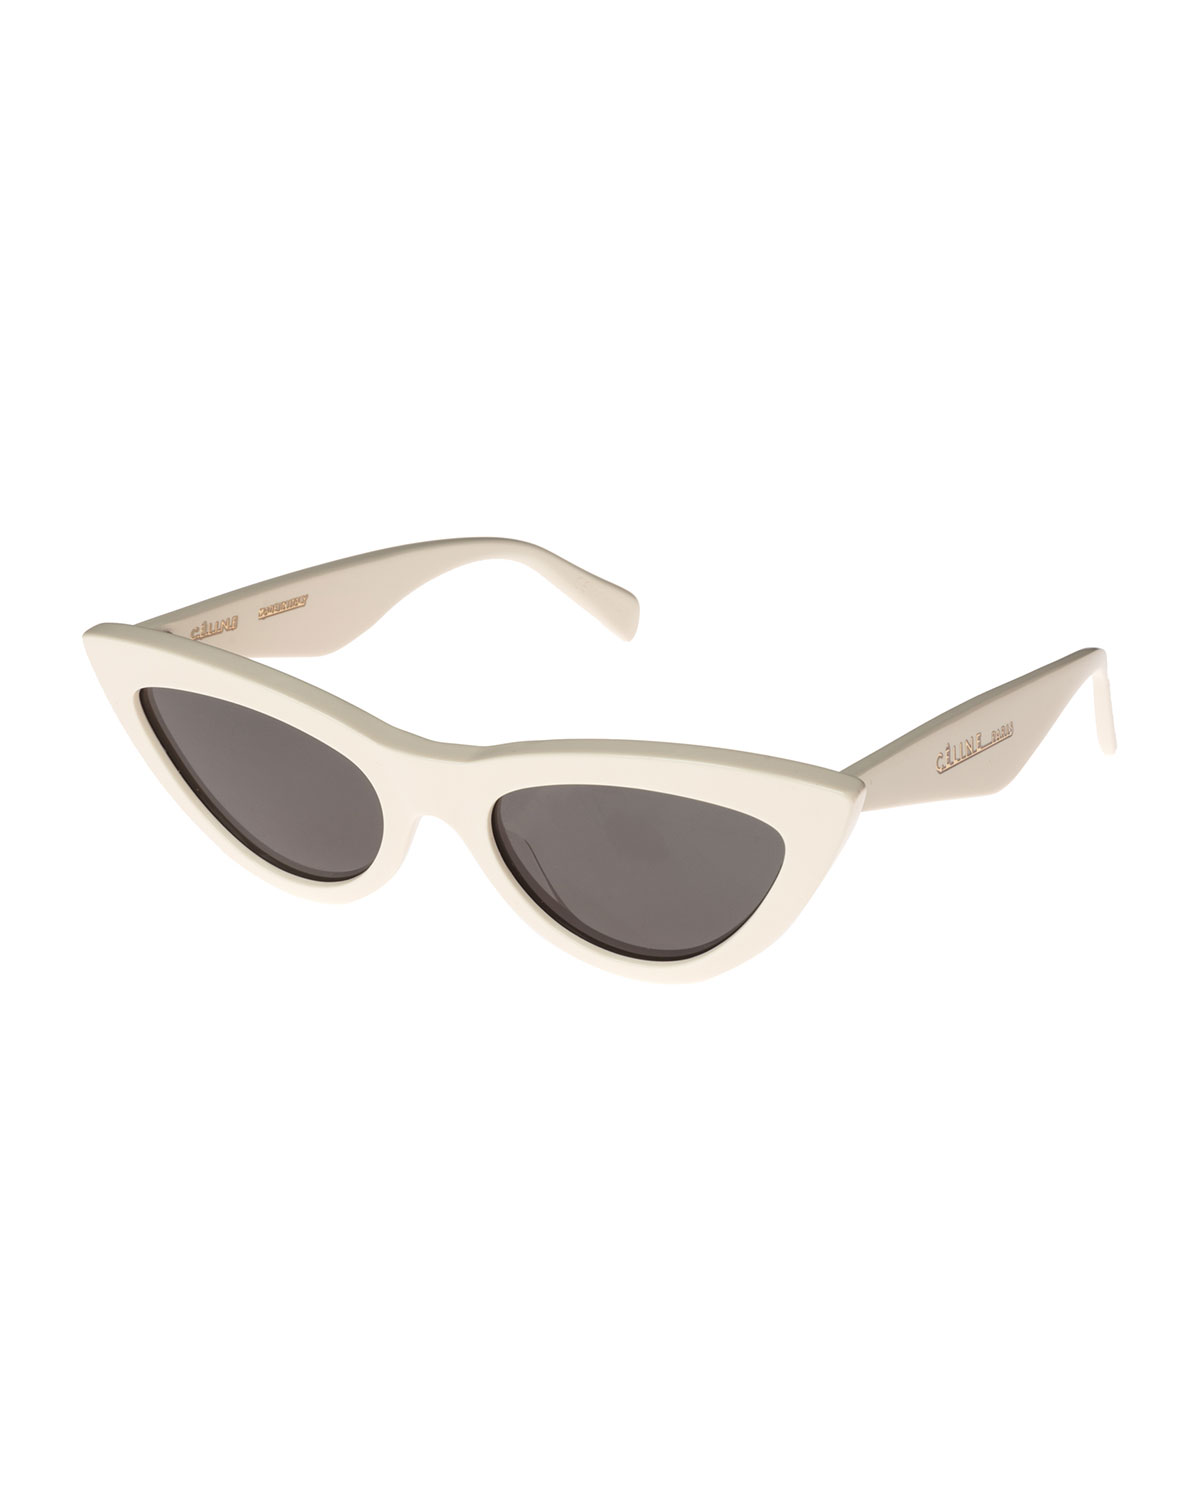 6befd4032ff Celine Exaggerated Cat-Eye Sunglasses